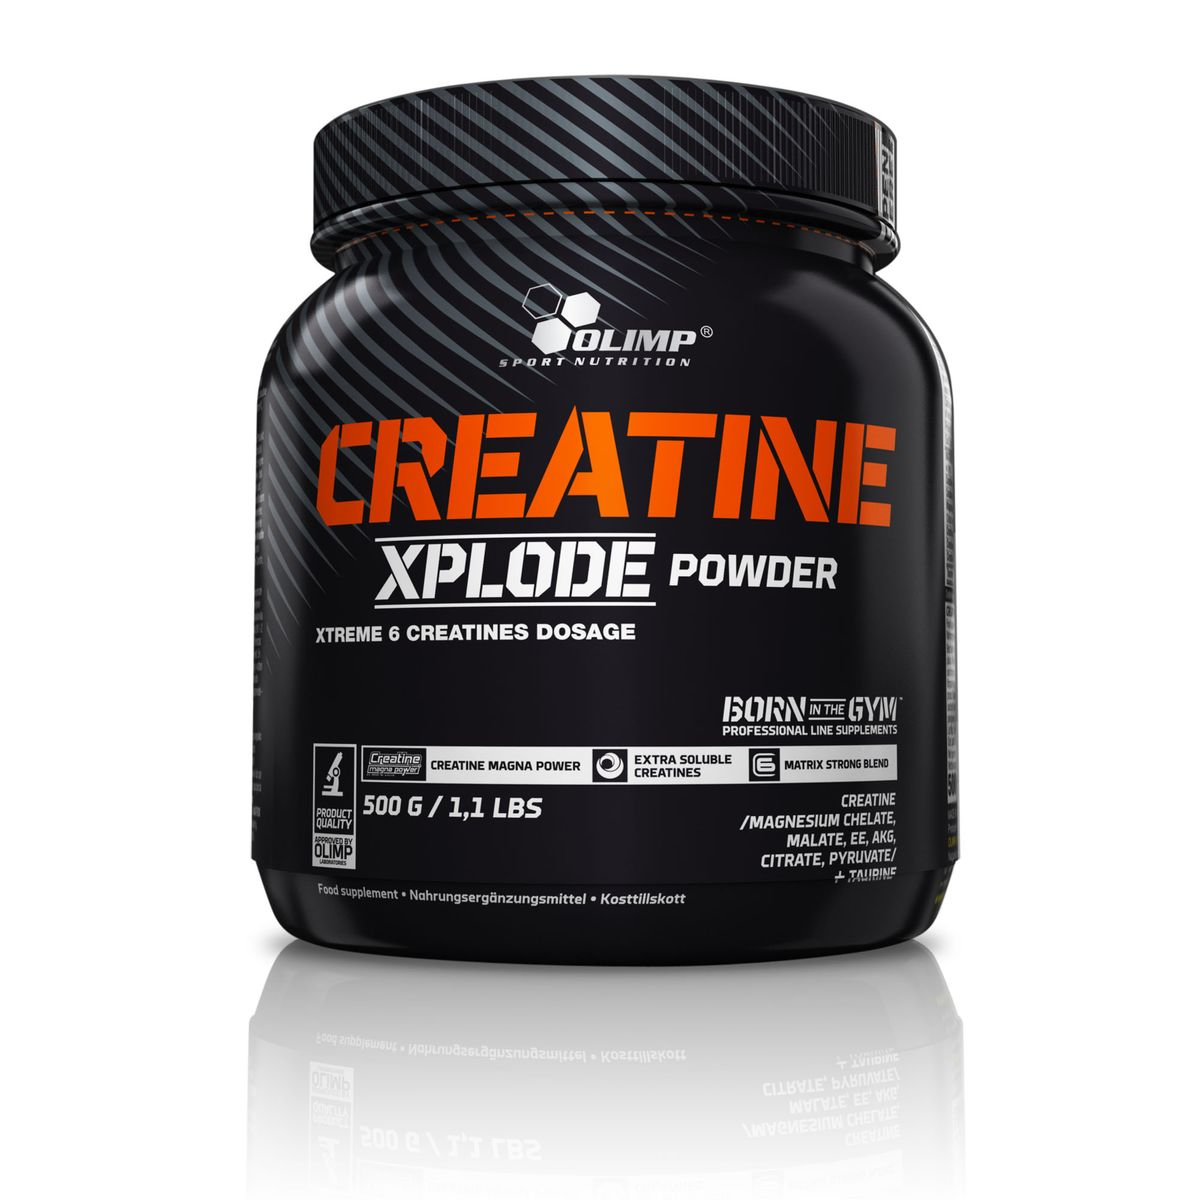 Креатин Olimp Sport Nutrition Xplode Powder, ананас, 500 г креатин atech nutrition creatine monohydrate 100% 300 г